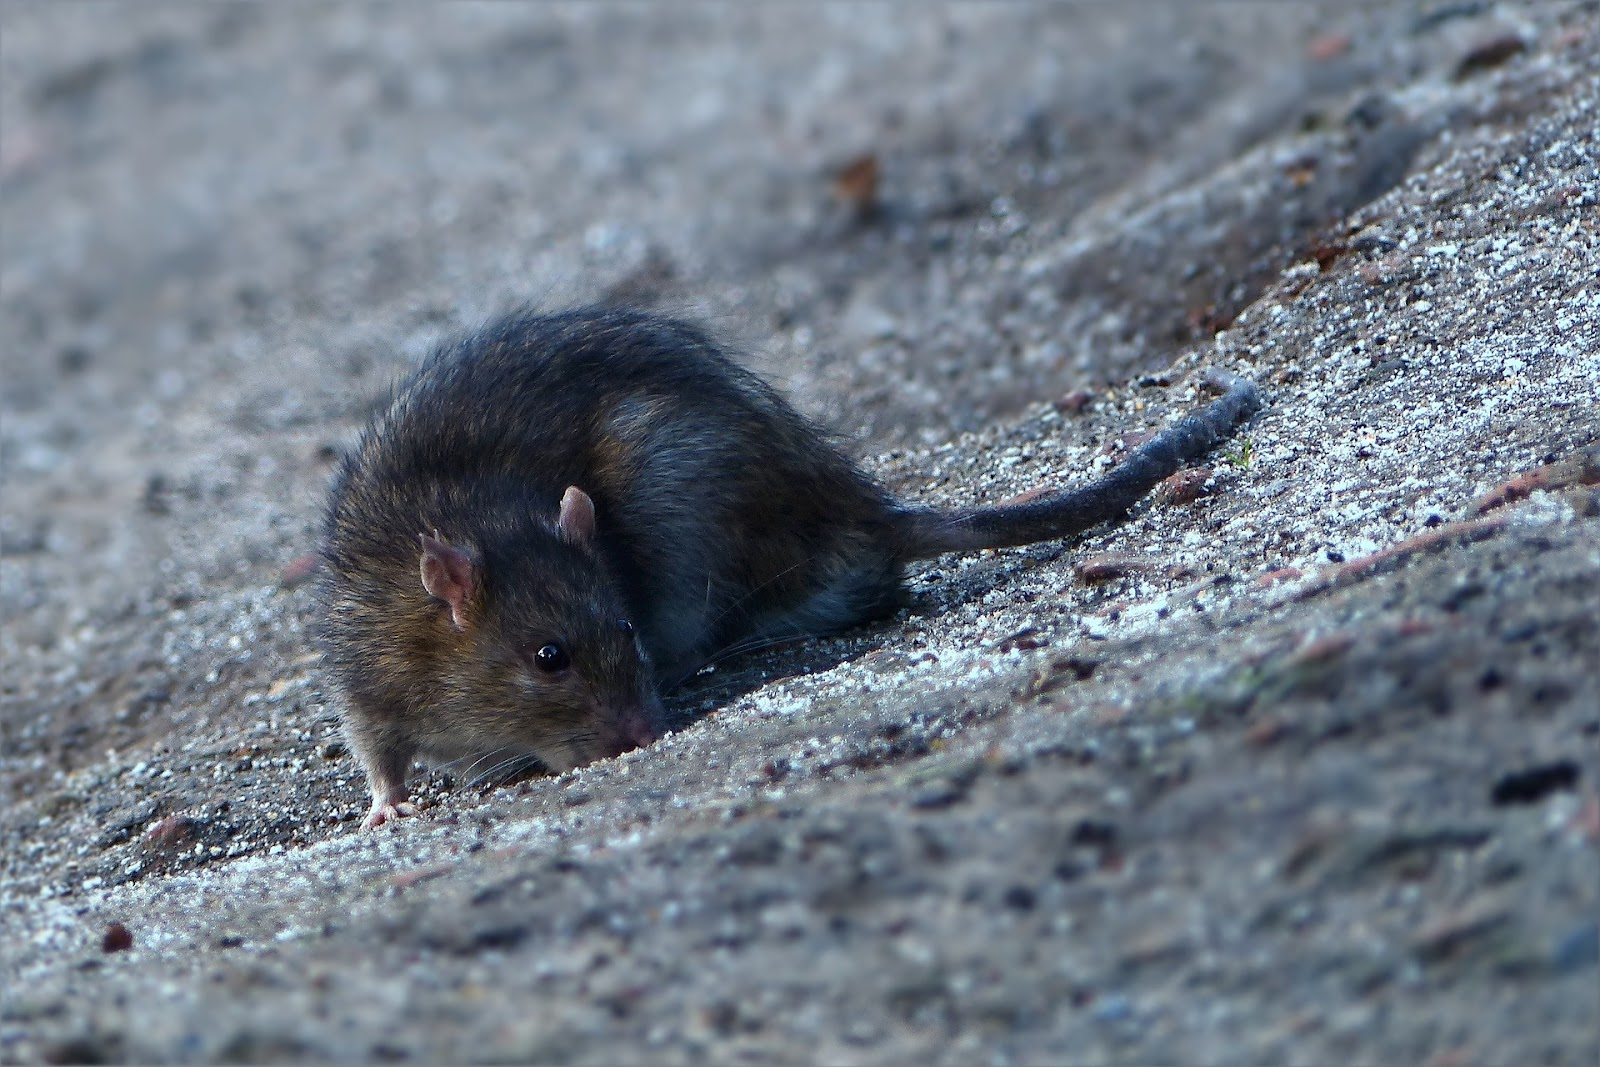 Digging is a rat specialty; the rodents often use this talent not only to gather food, but also to burrow under plantings, such as trees and shrubbery.